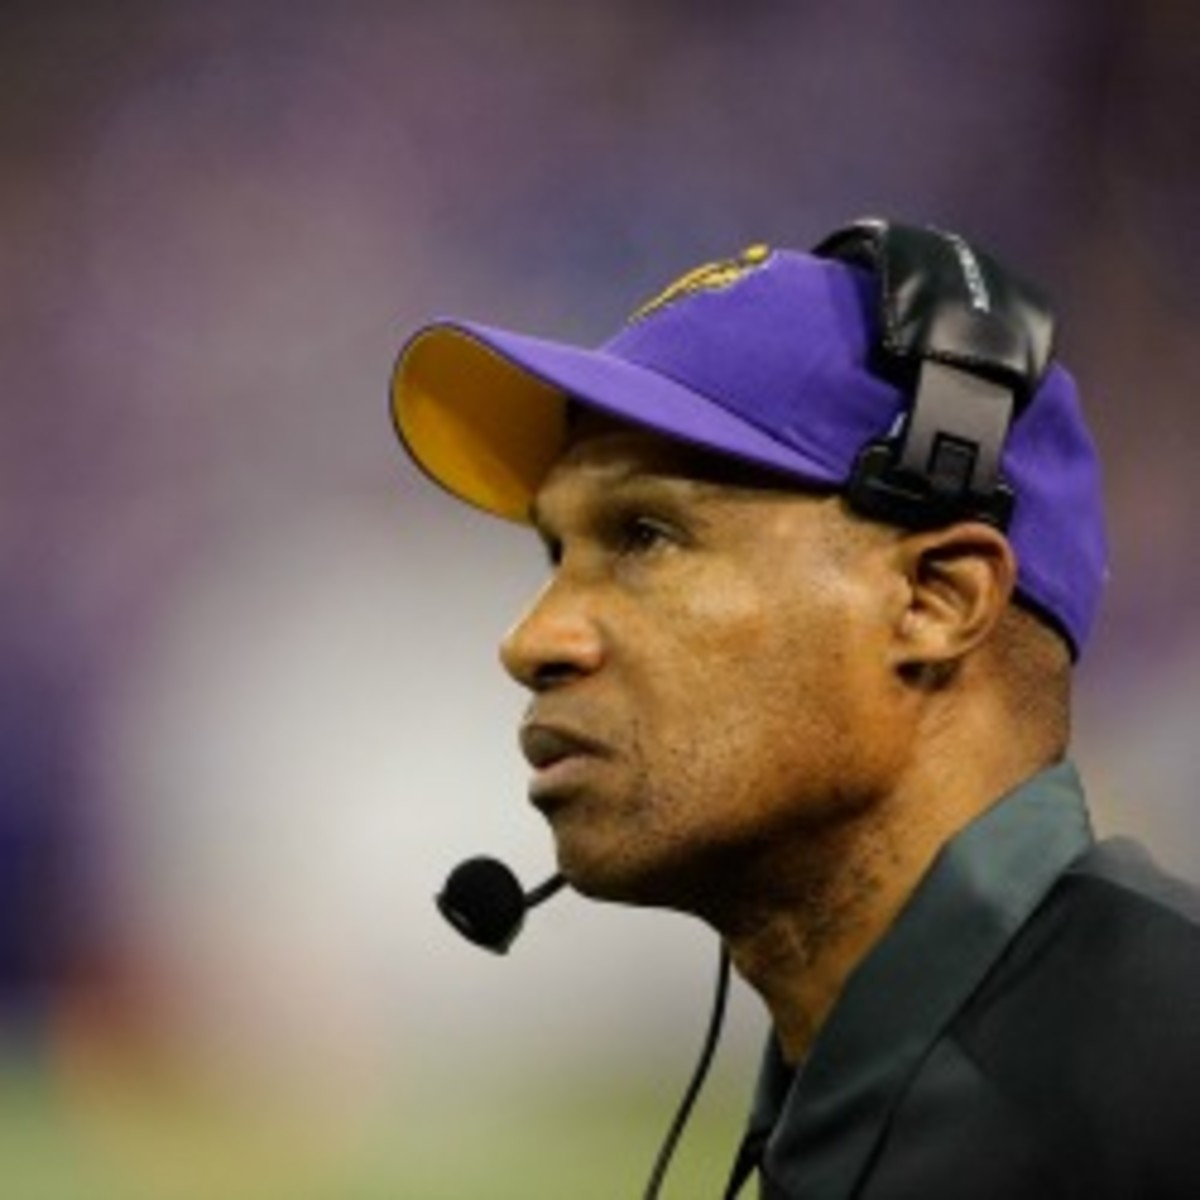 Vikings coach Leslie Frazier is currently under contract through the 2013 season. (Hannah Foslien/Getty Images)